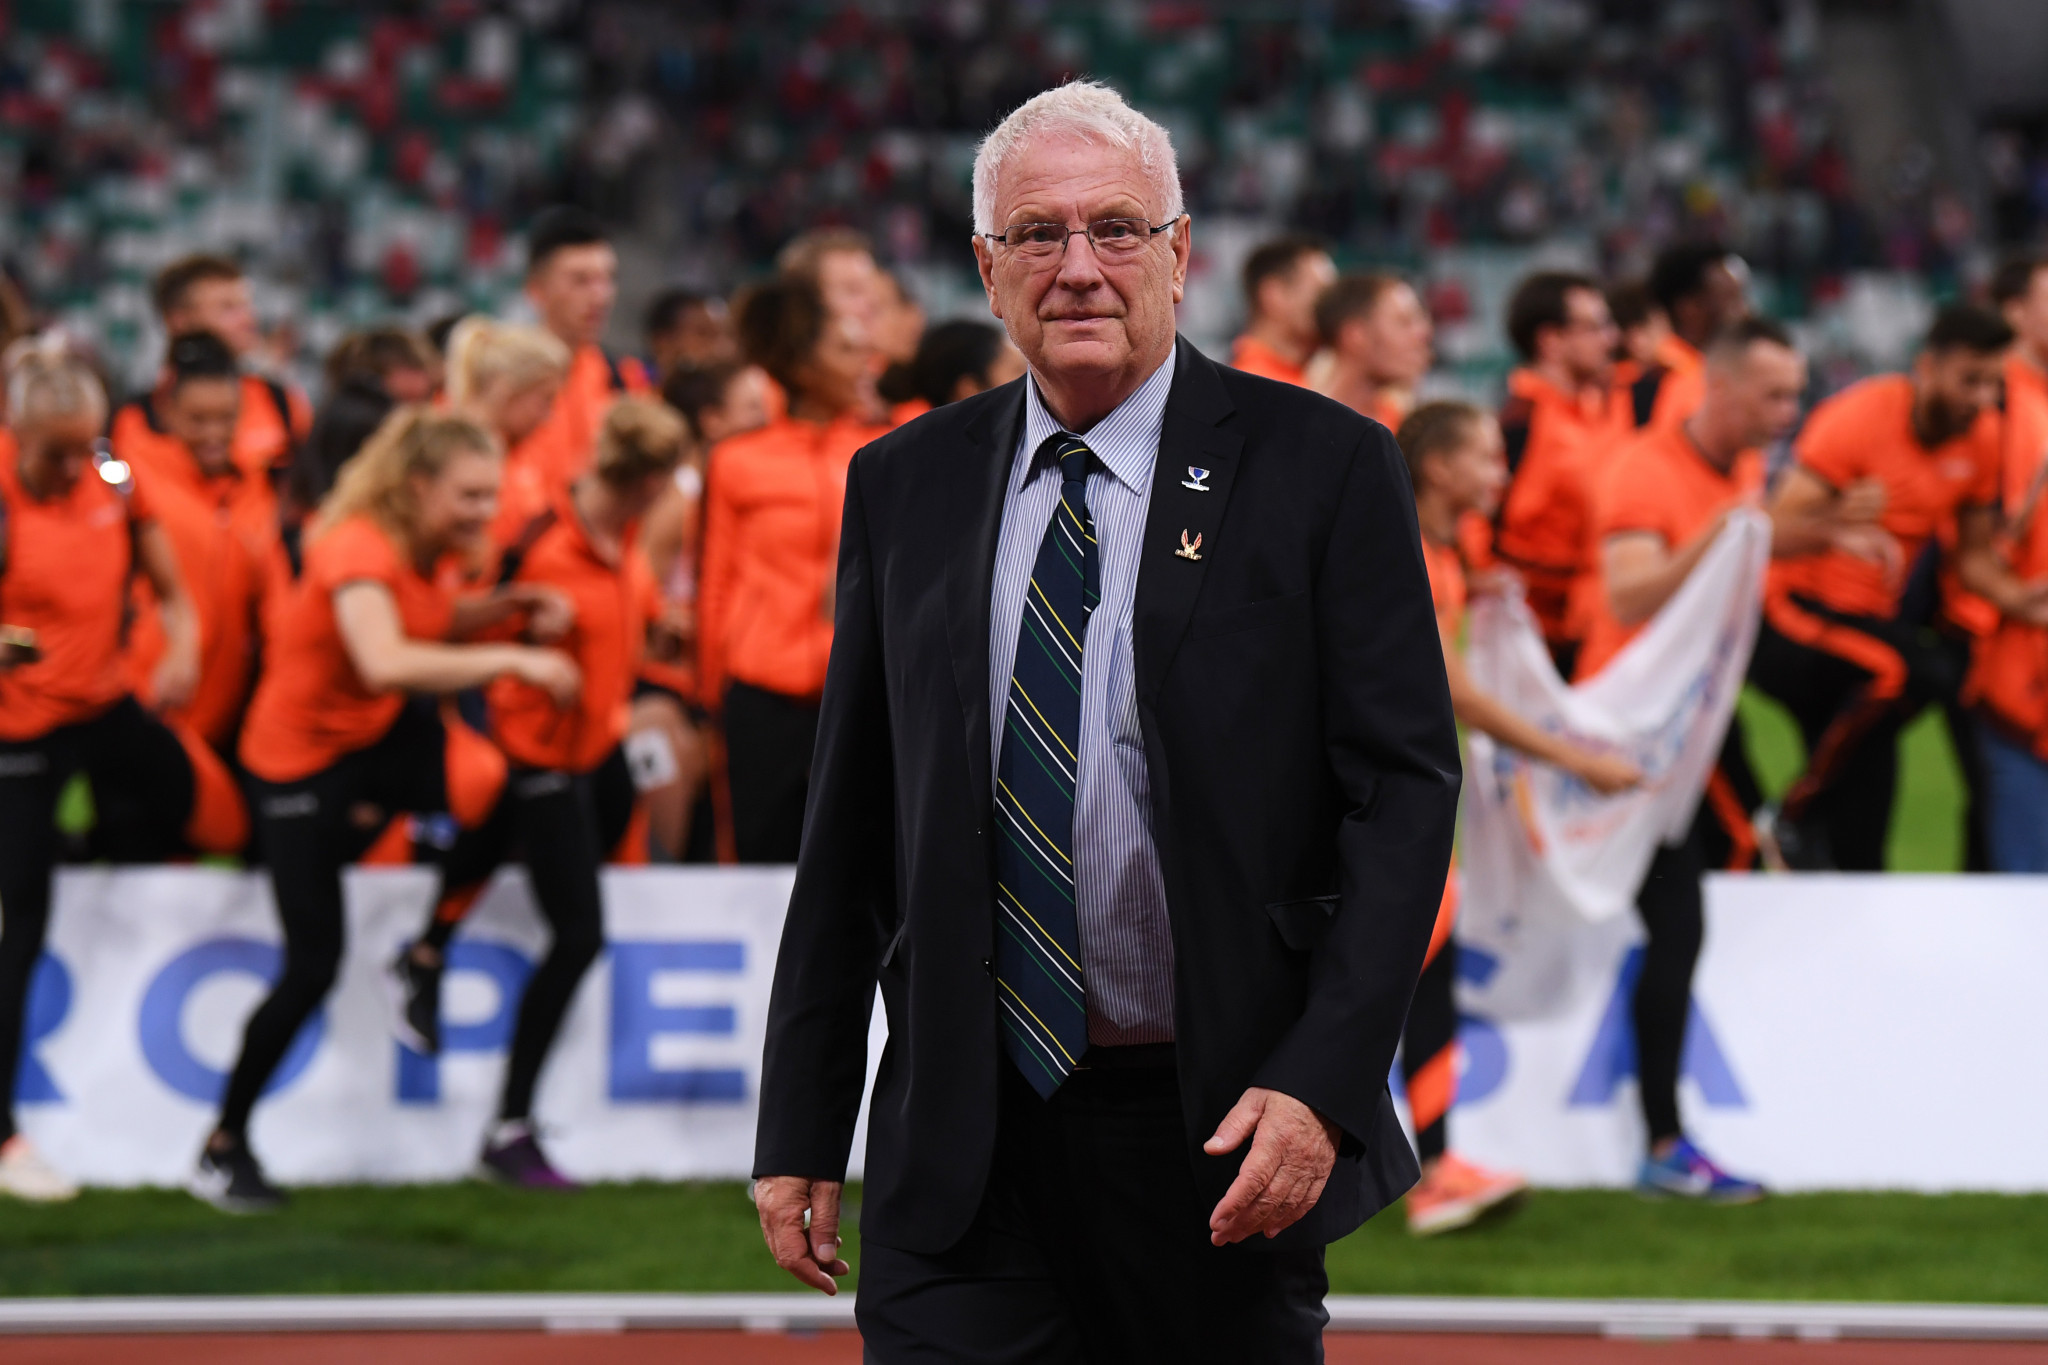 European Athletics President Svein Arne Hansen is said to be in a stable condition ©Getty Images